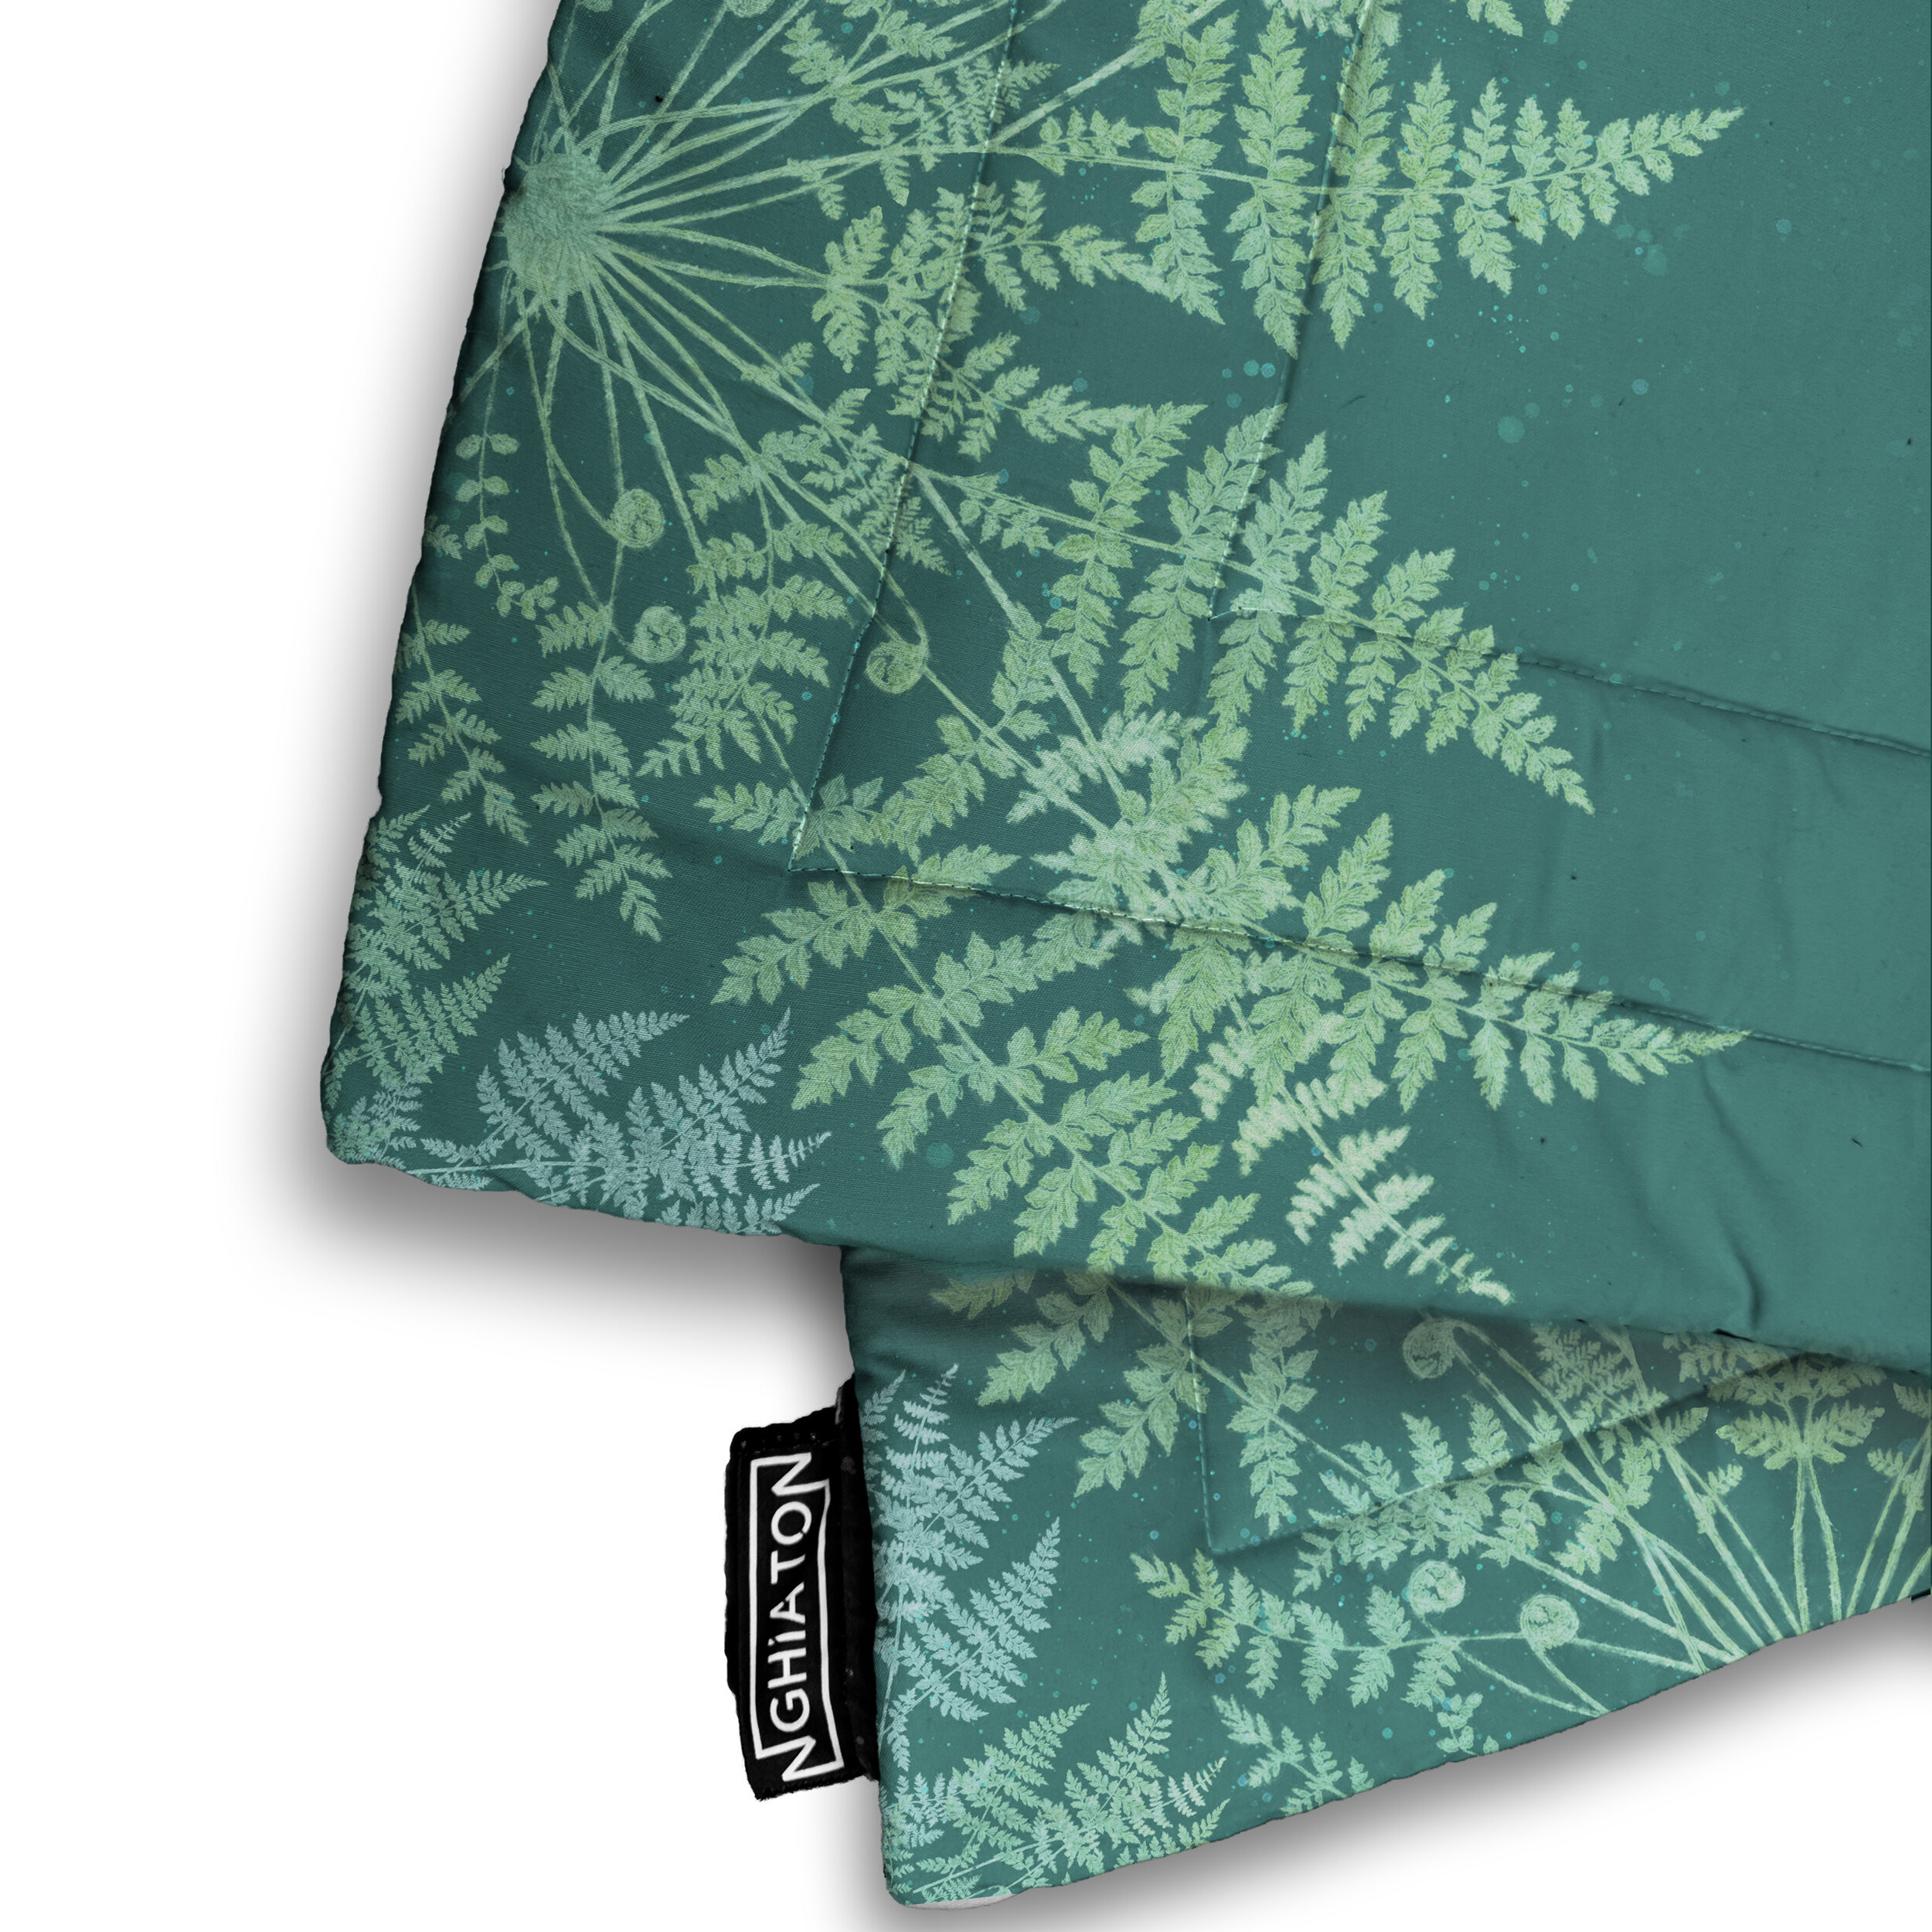 Enfern Quilted Blanket